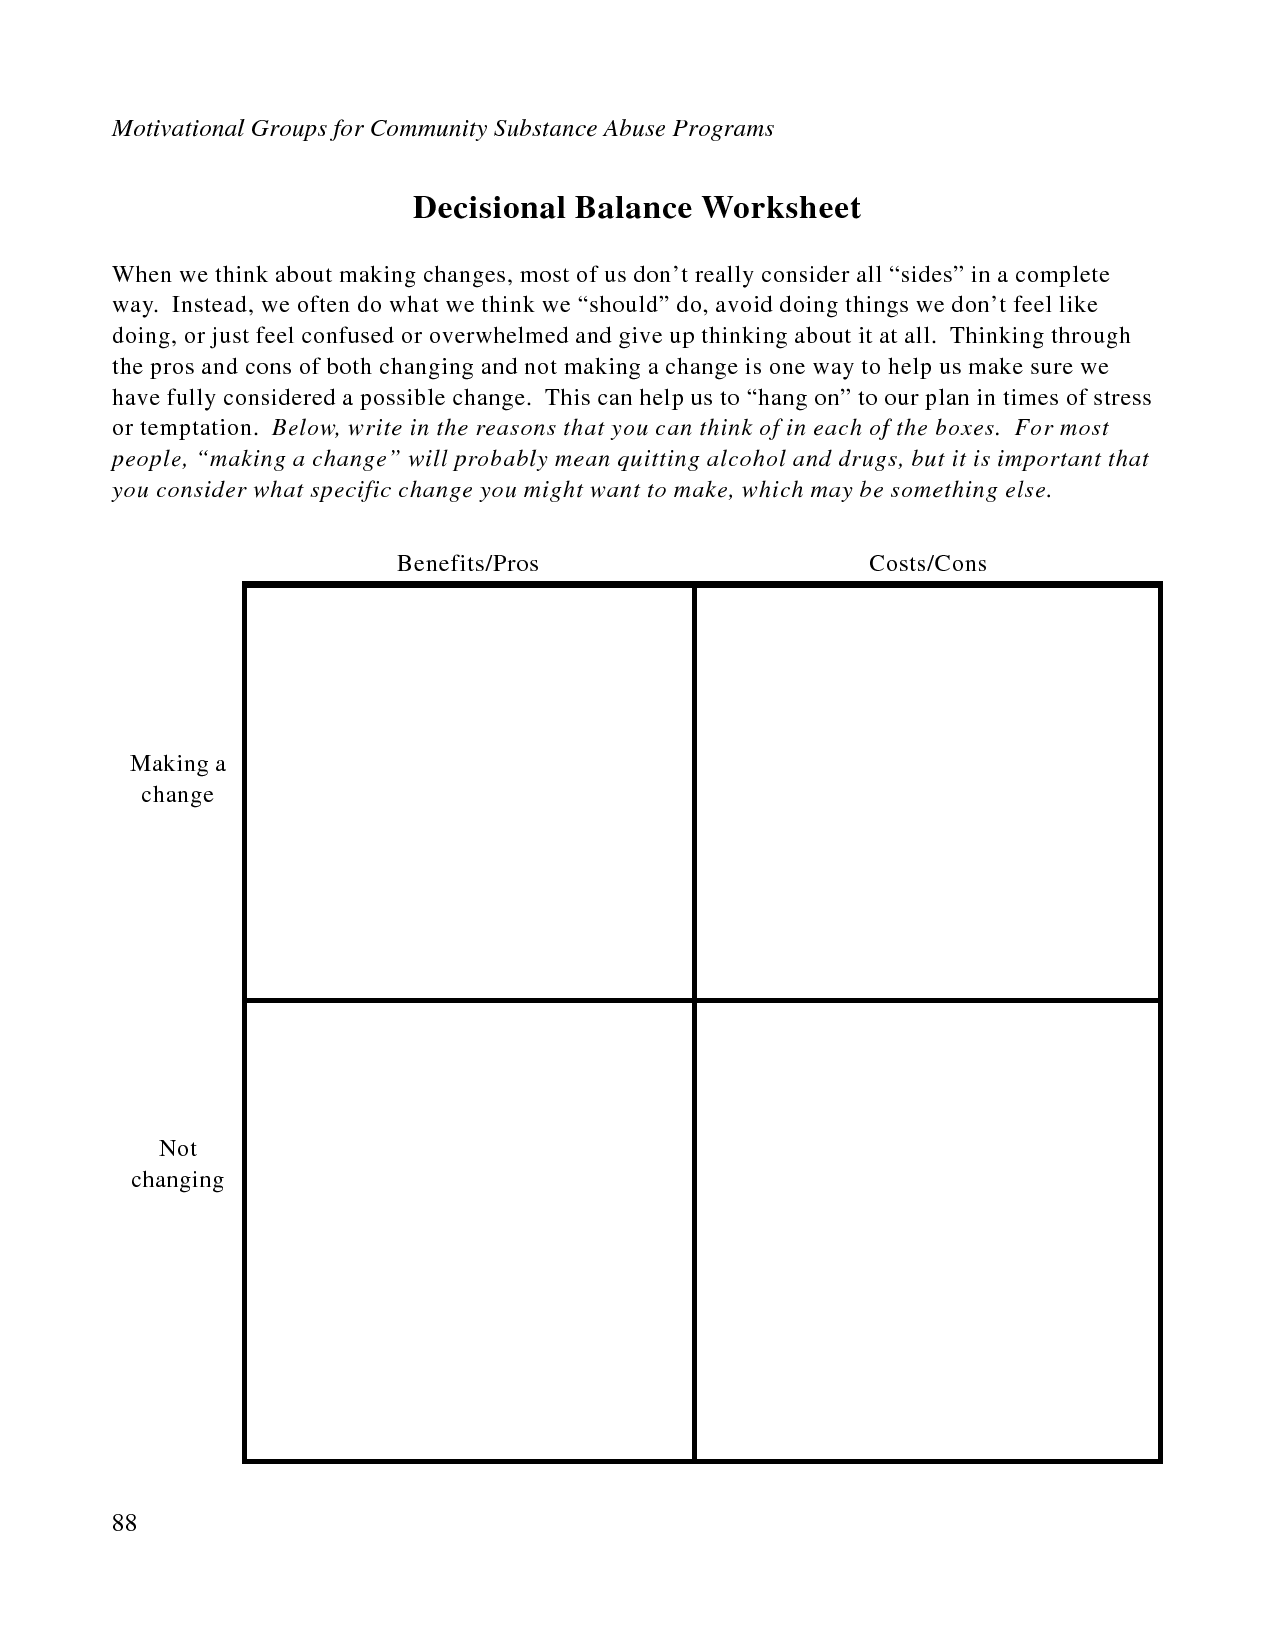 Decisional Balance Worksheet | Therapy Tools | Therapy ...